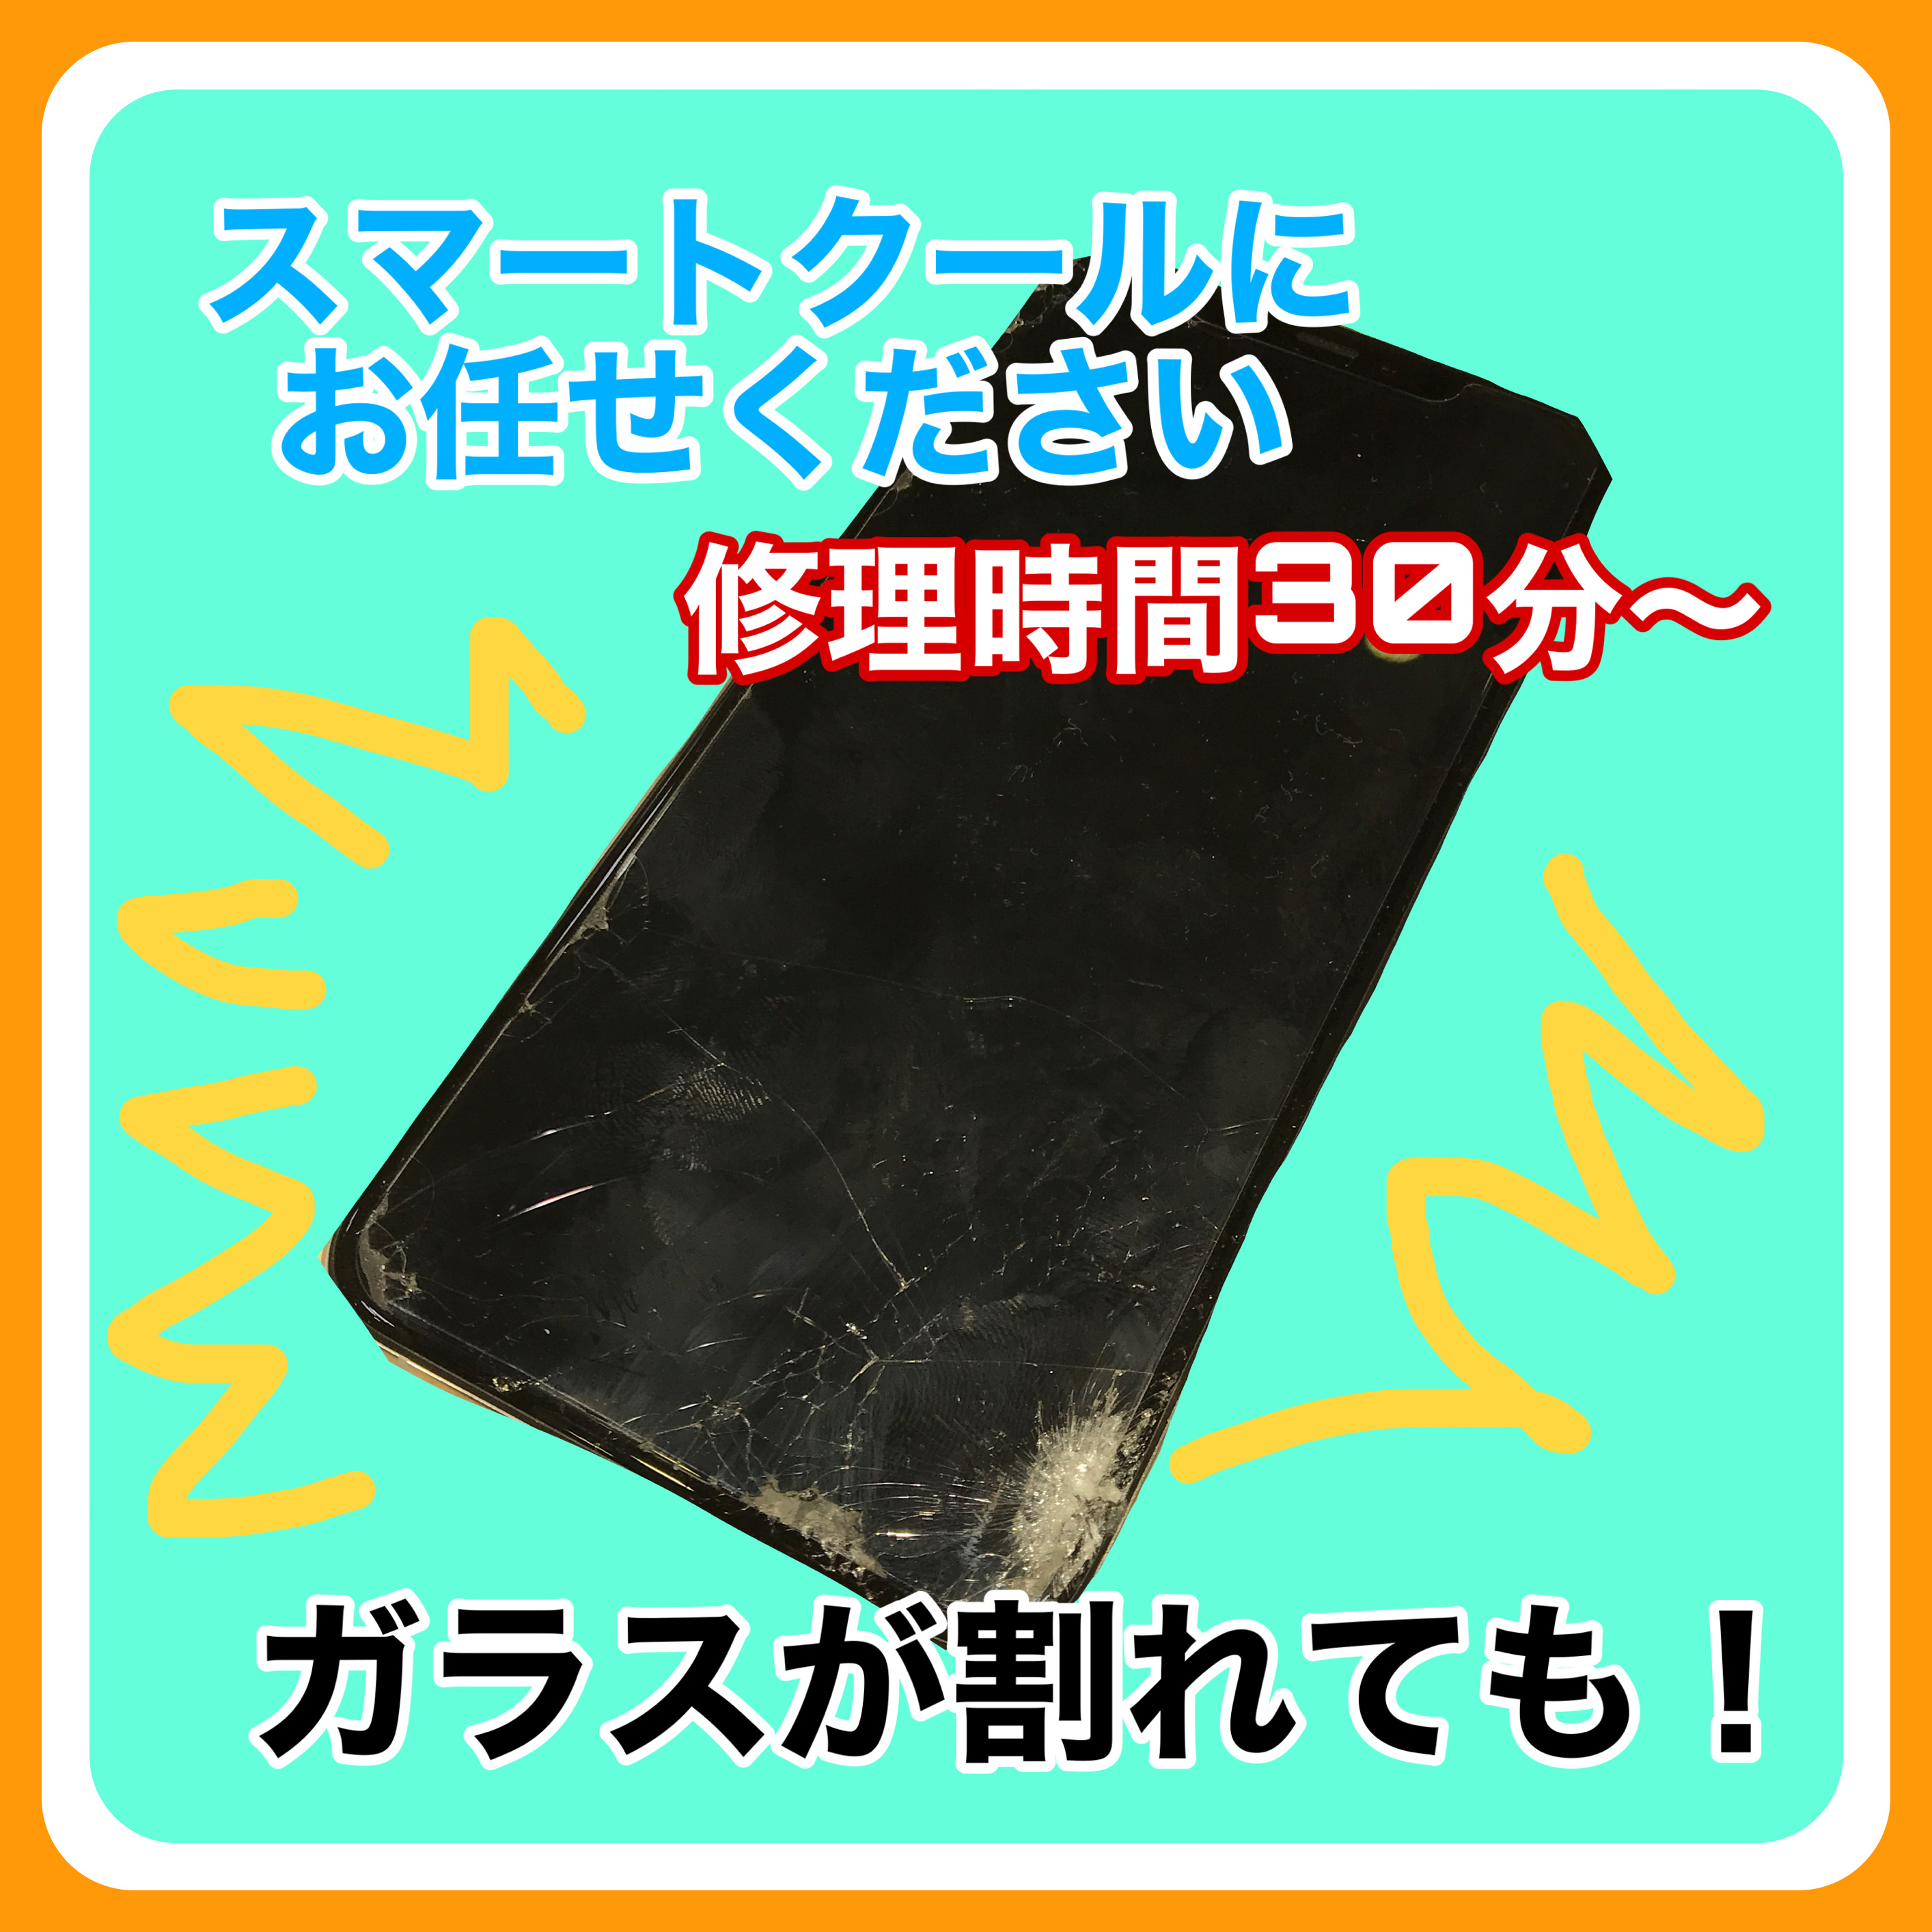 iPhoneXガラス割れの修理をご依頼頂きました!【京田辺市薪長尾谷】